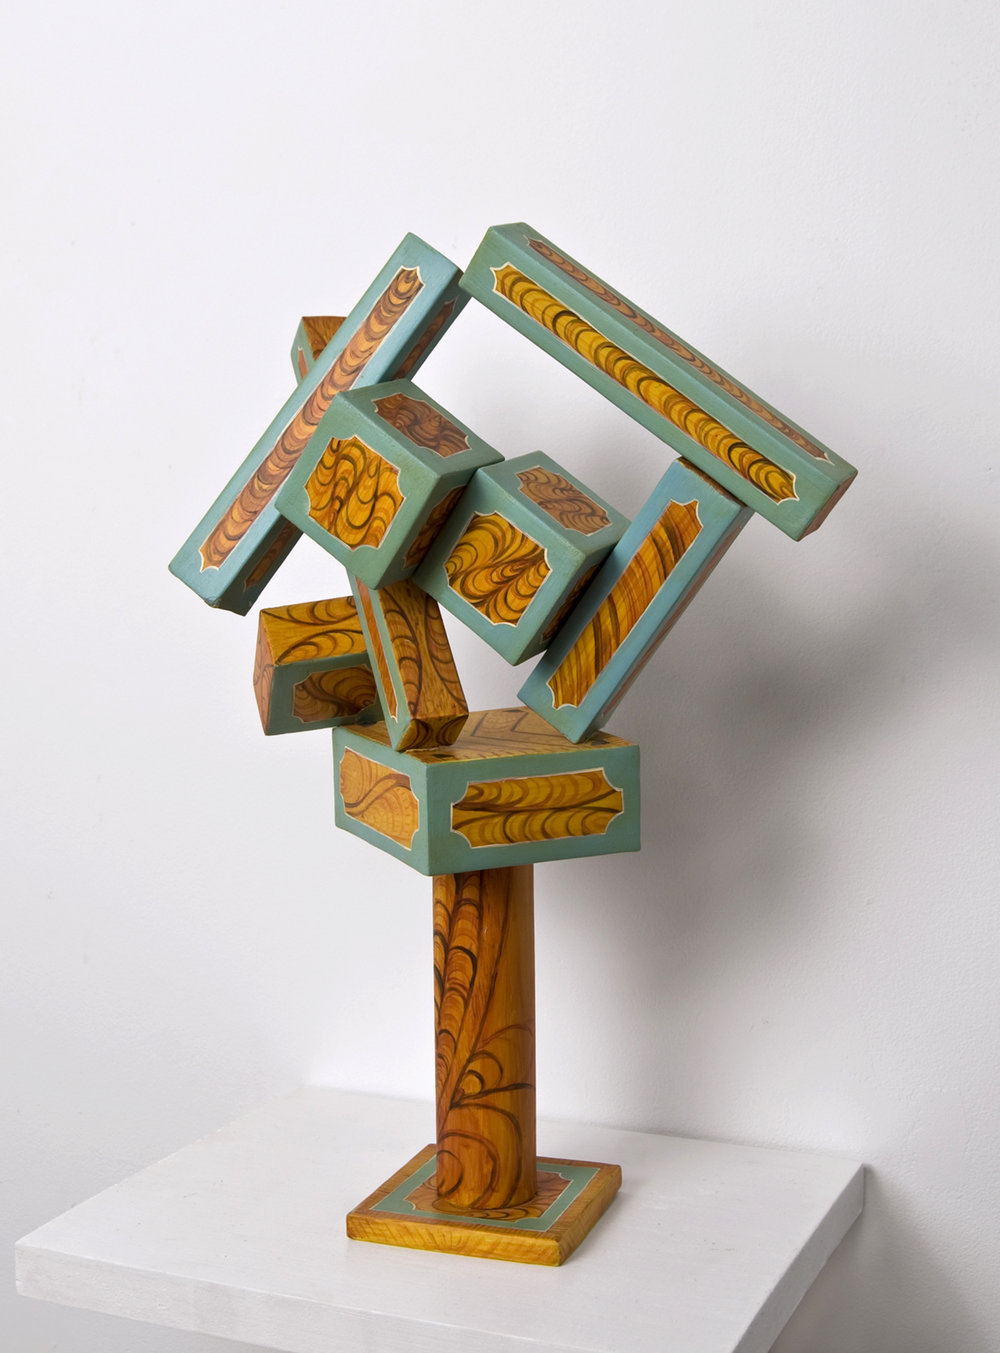 Panter (Cubi XVII), 2011, paper, acrylic, wooden armature, 14 x 9 1/2 x 5 inches